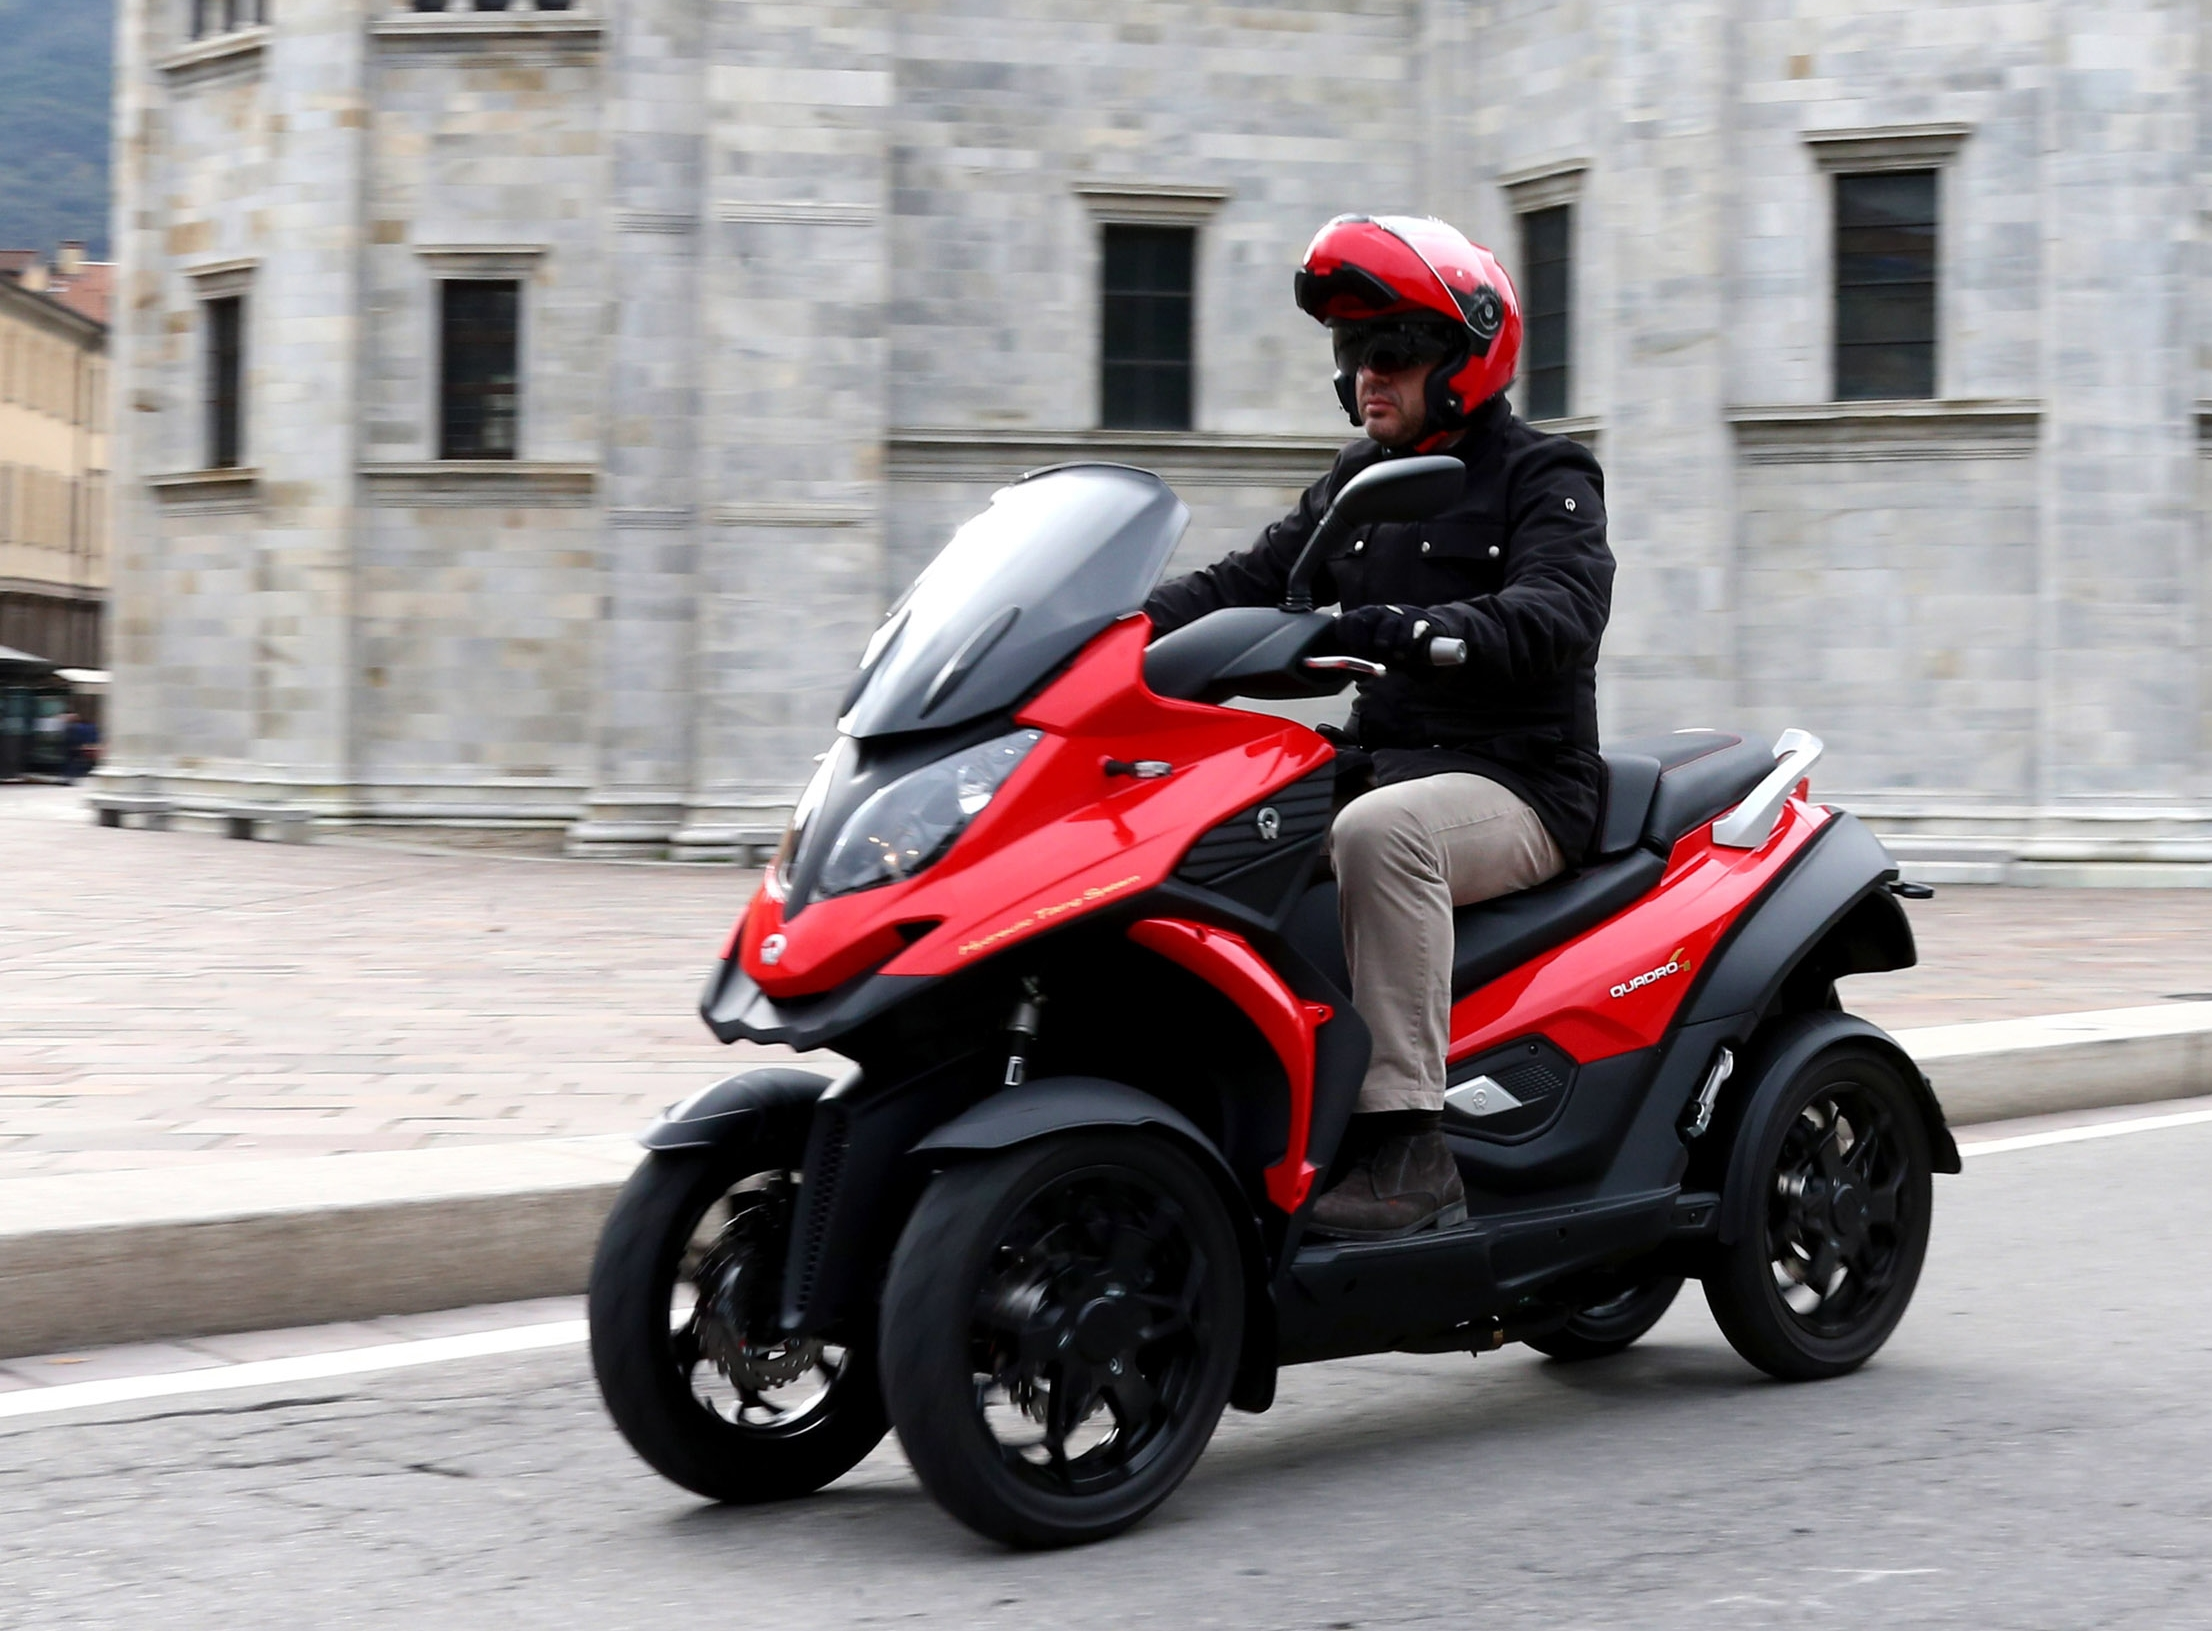 quadro 4 le 1er scooter quatre roues en concession d but 2015 photo 6 l 39 argus. Black Bedroom Furniture Sets. Home Design Ideas